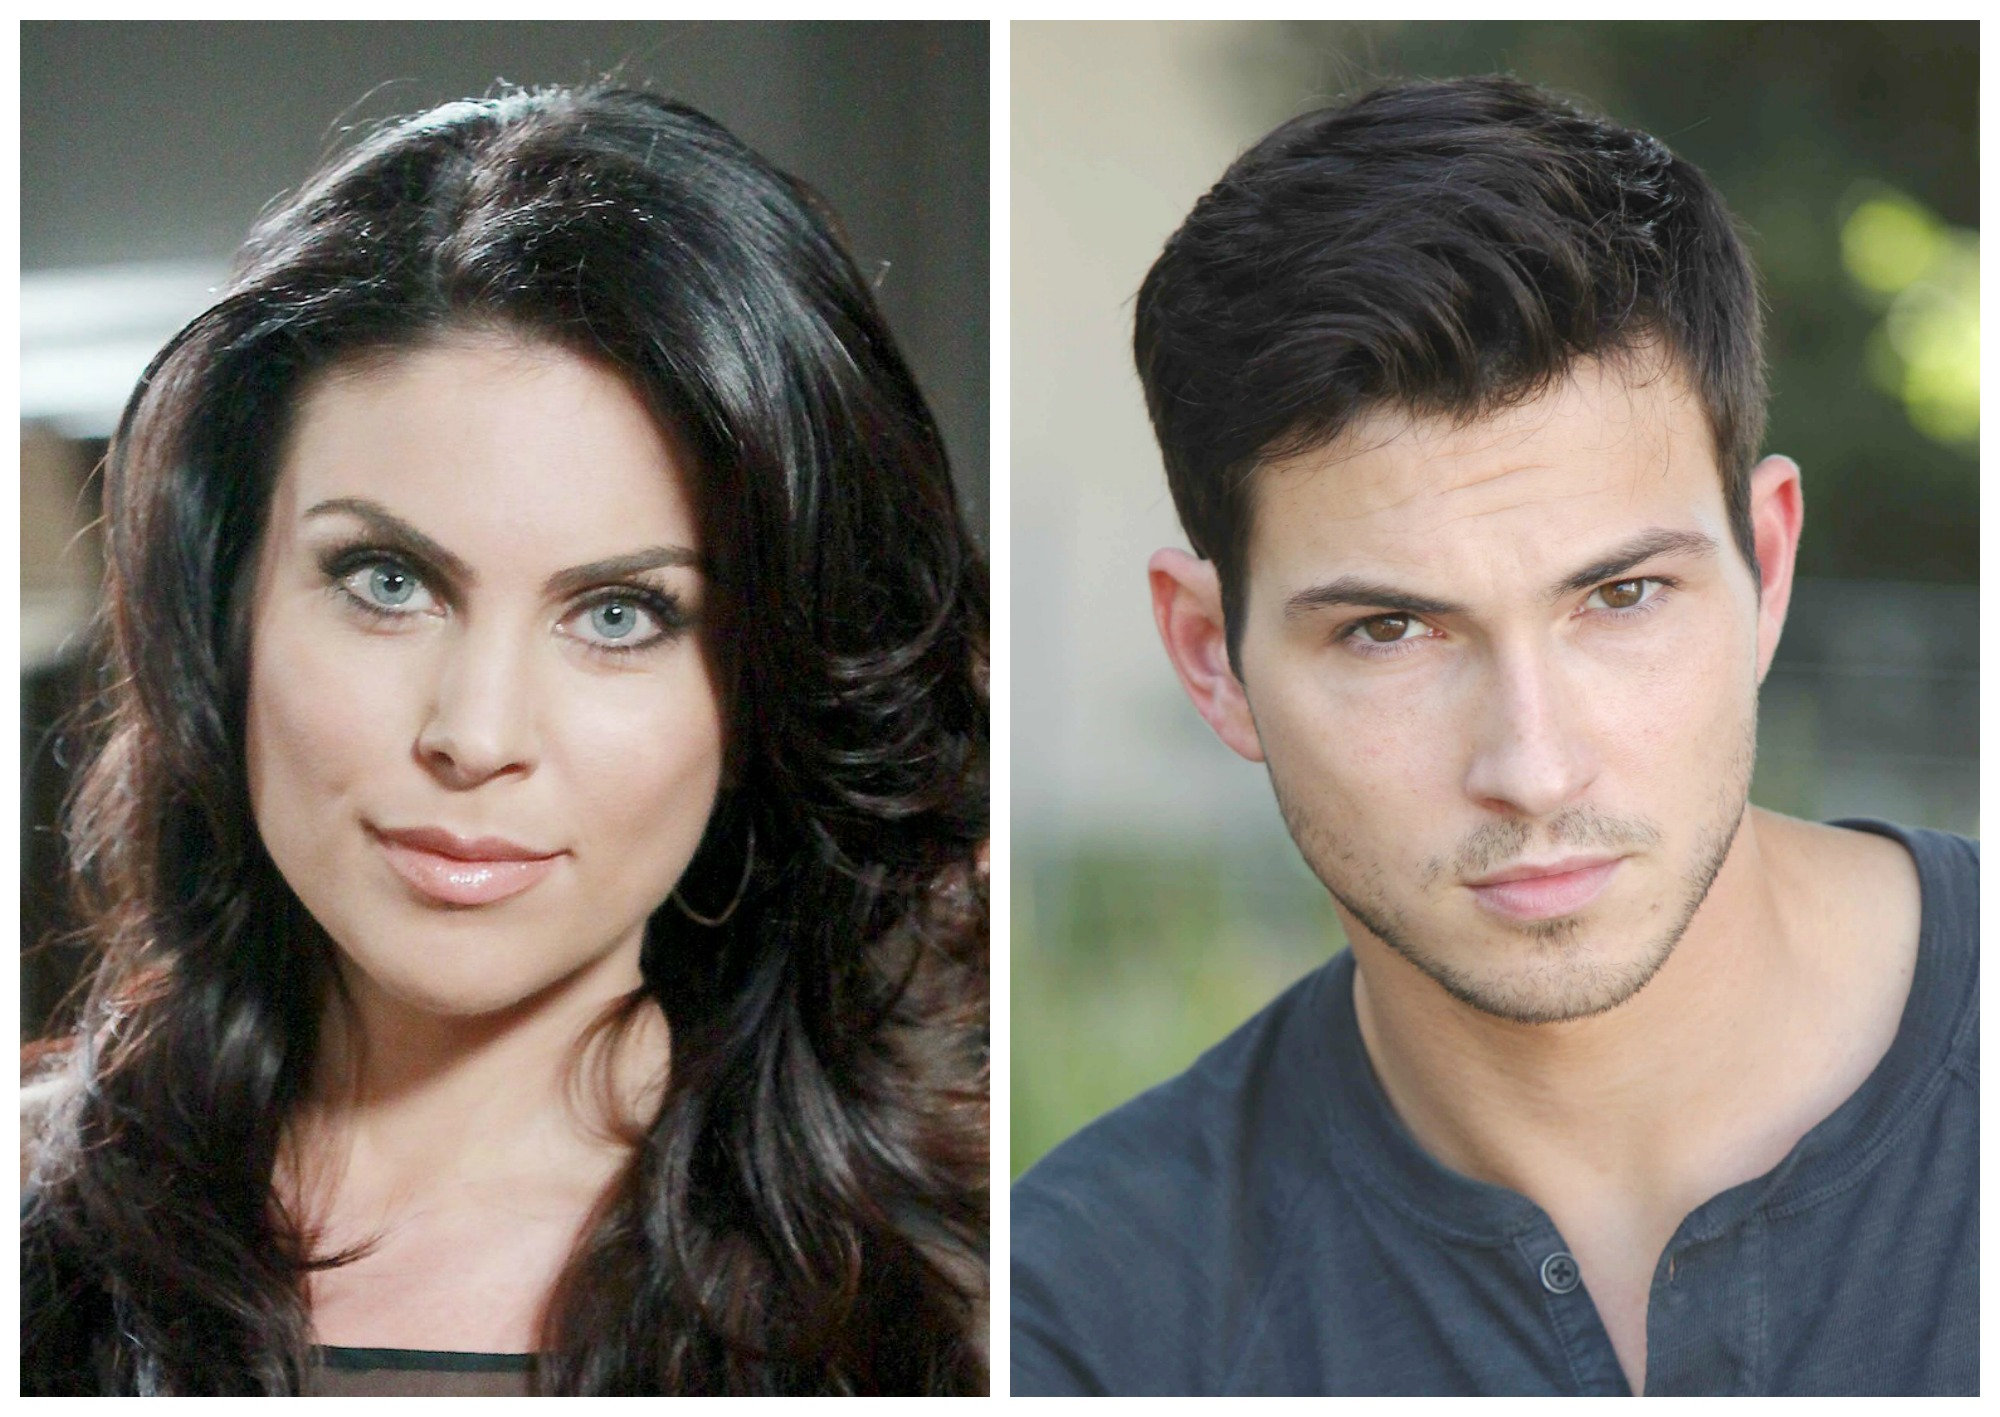 DAYS Nadia Bjorlin & Robert Scott Wilson - JPI